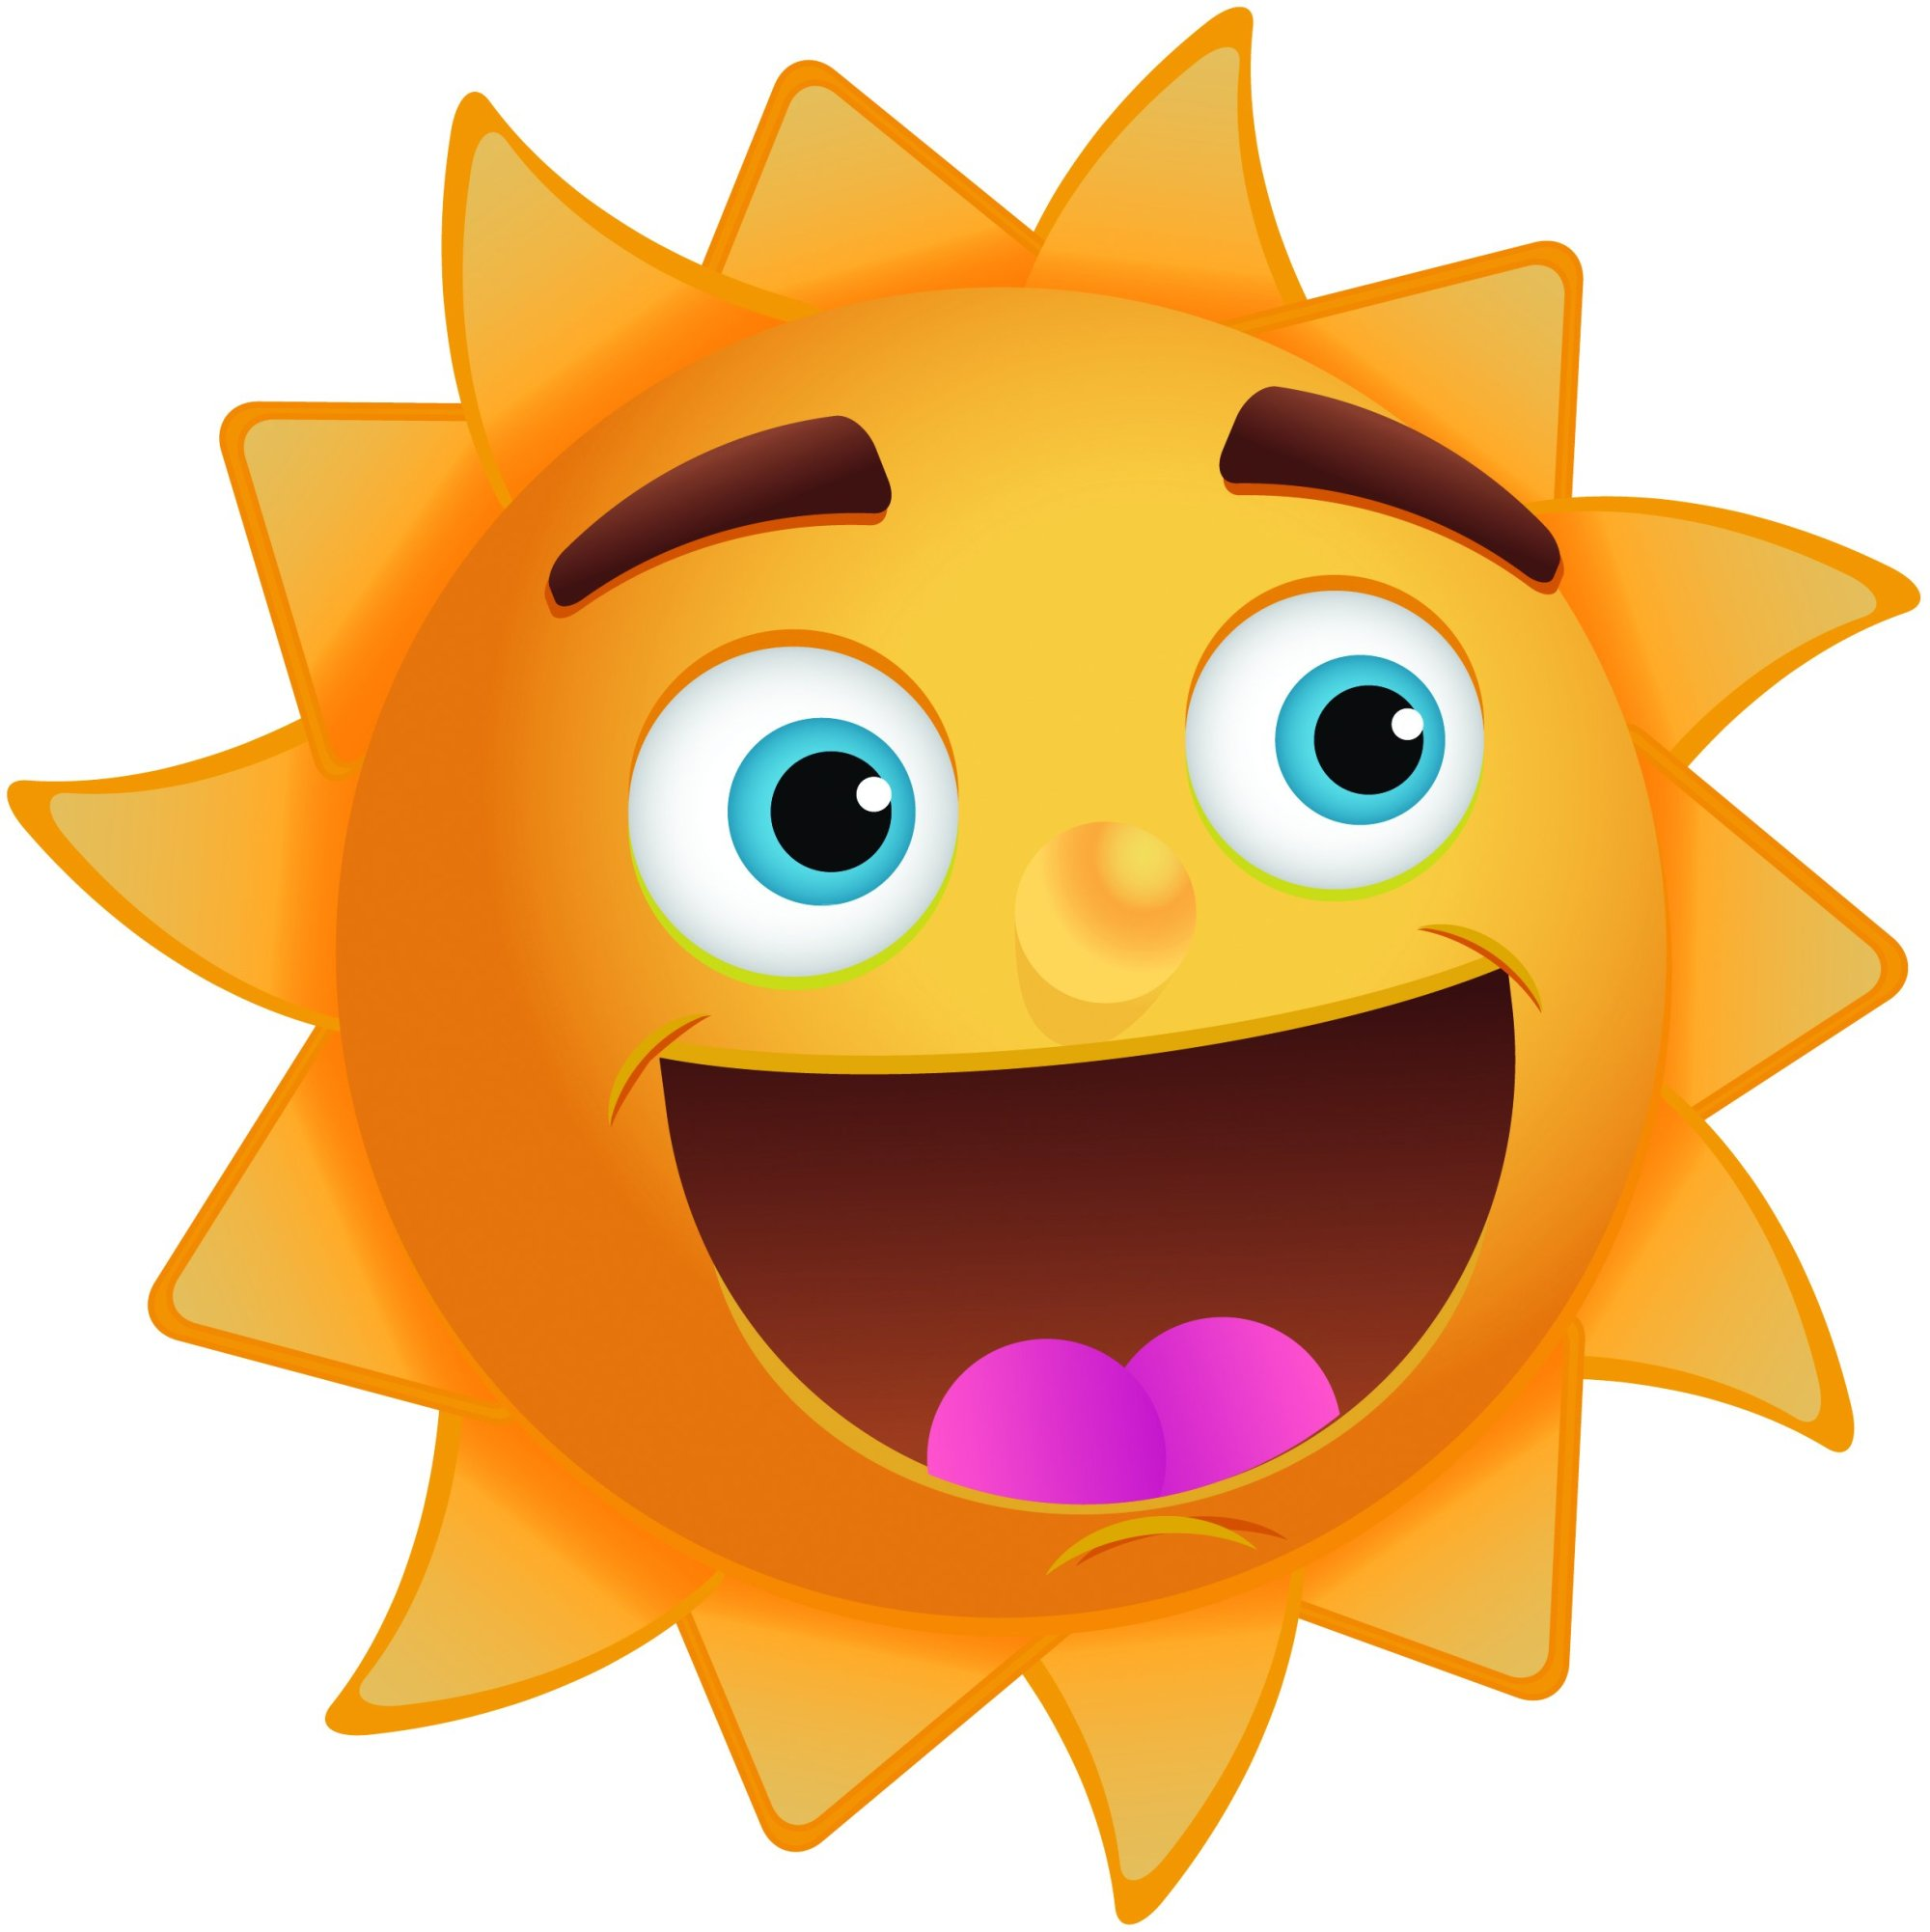 hight resolution of sunshine happy sun clipart free images 3